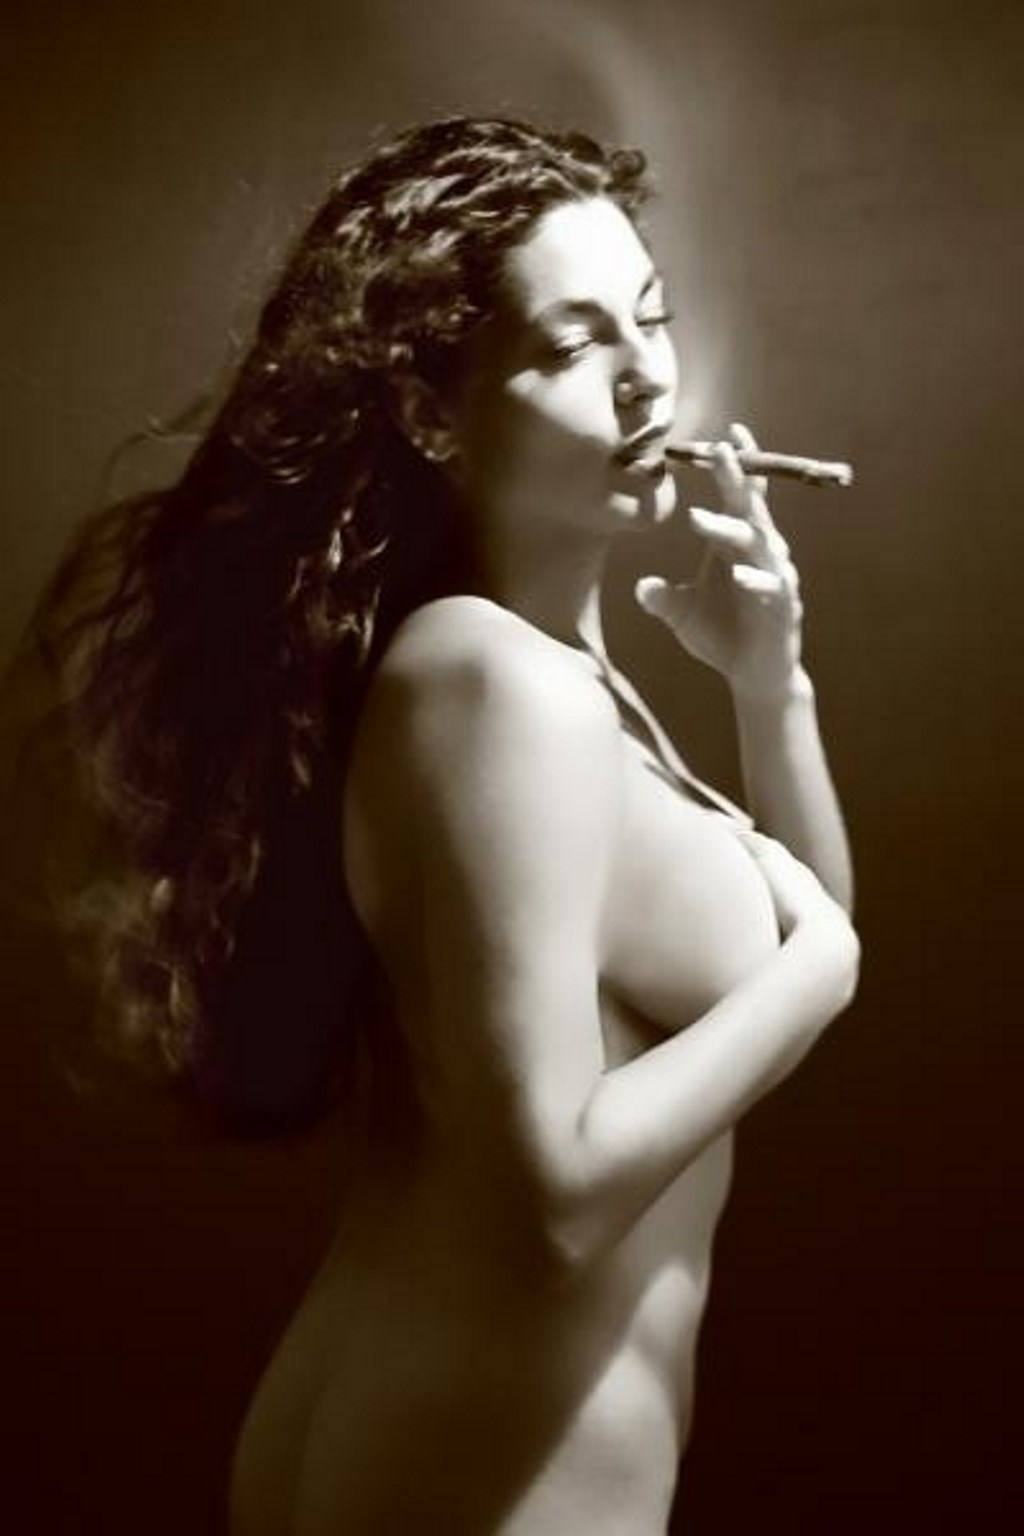 Naked Woman Smoking A Cigarette Behind The Window